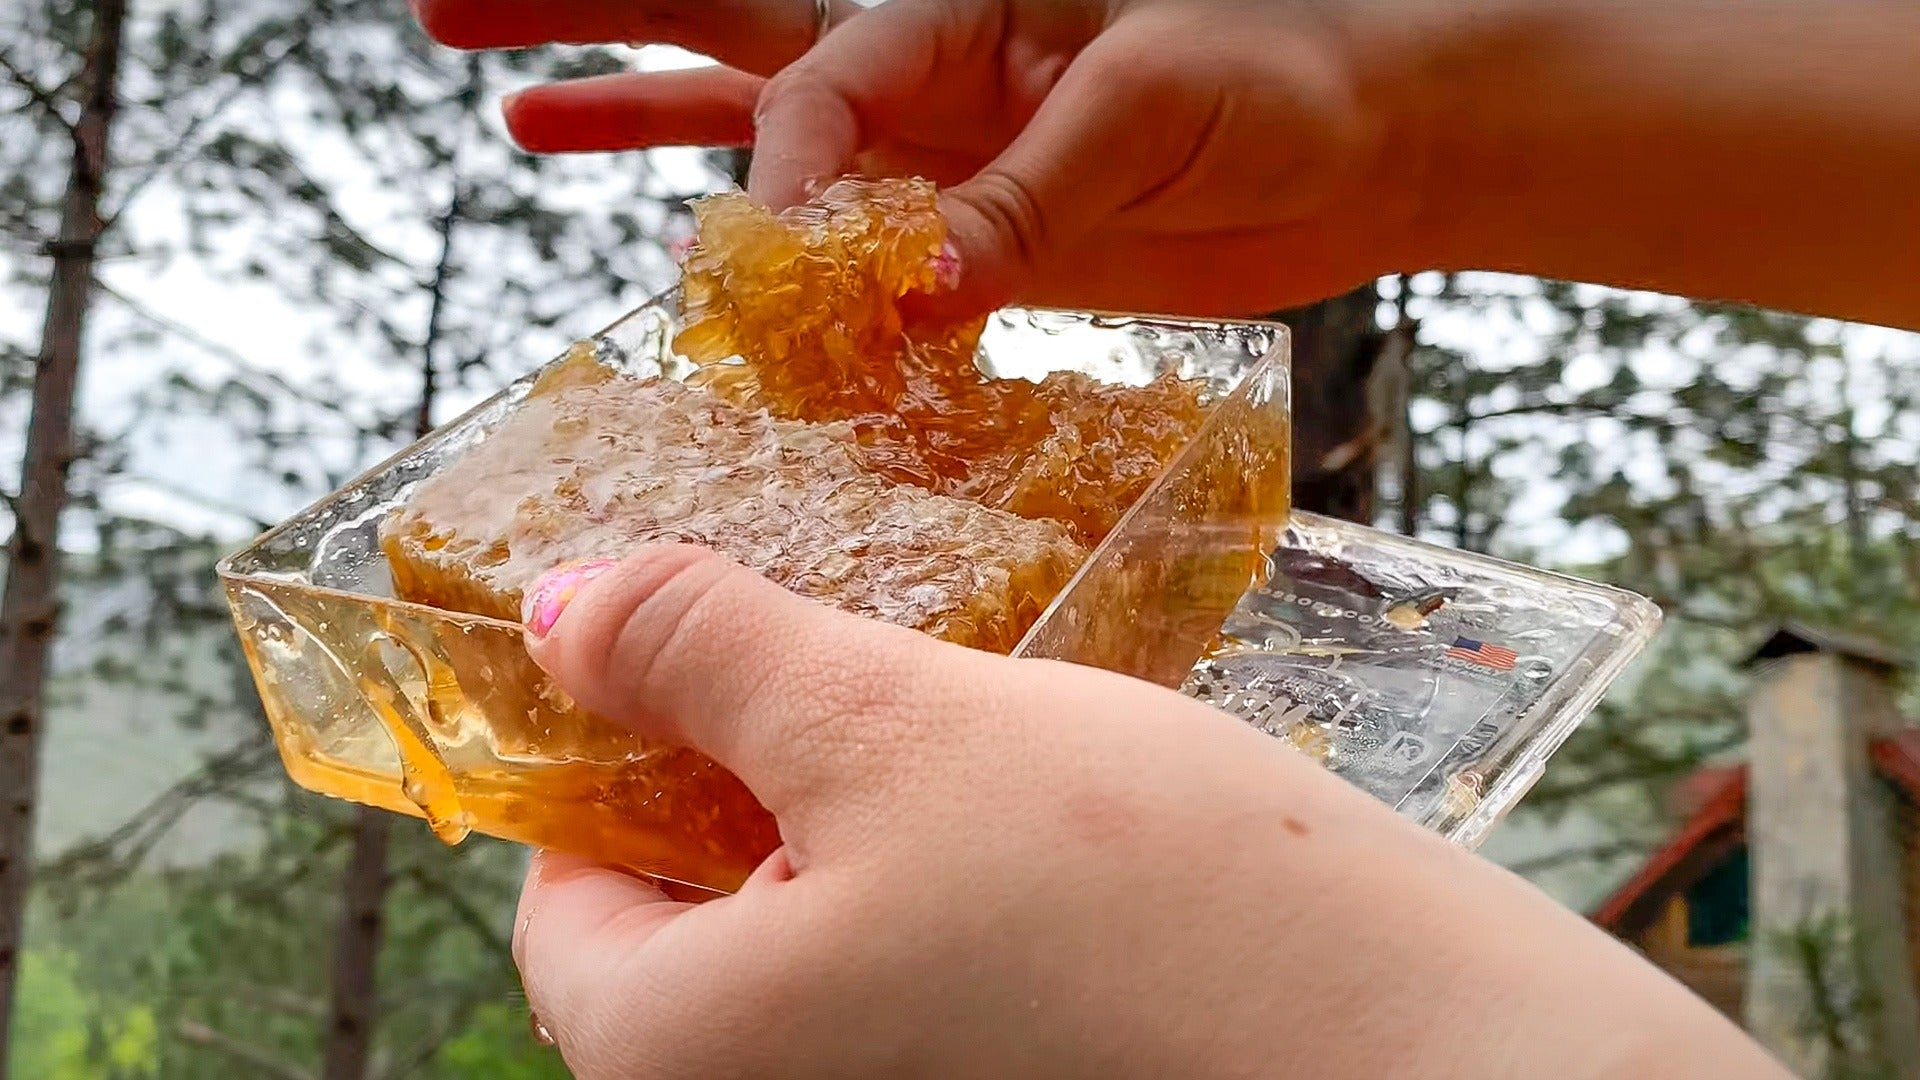 Video of the Honey Blossom comb box held with one hand, and with the other hand showing a piece of the comb, dropping its honey. With the background of a forest